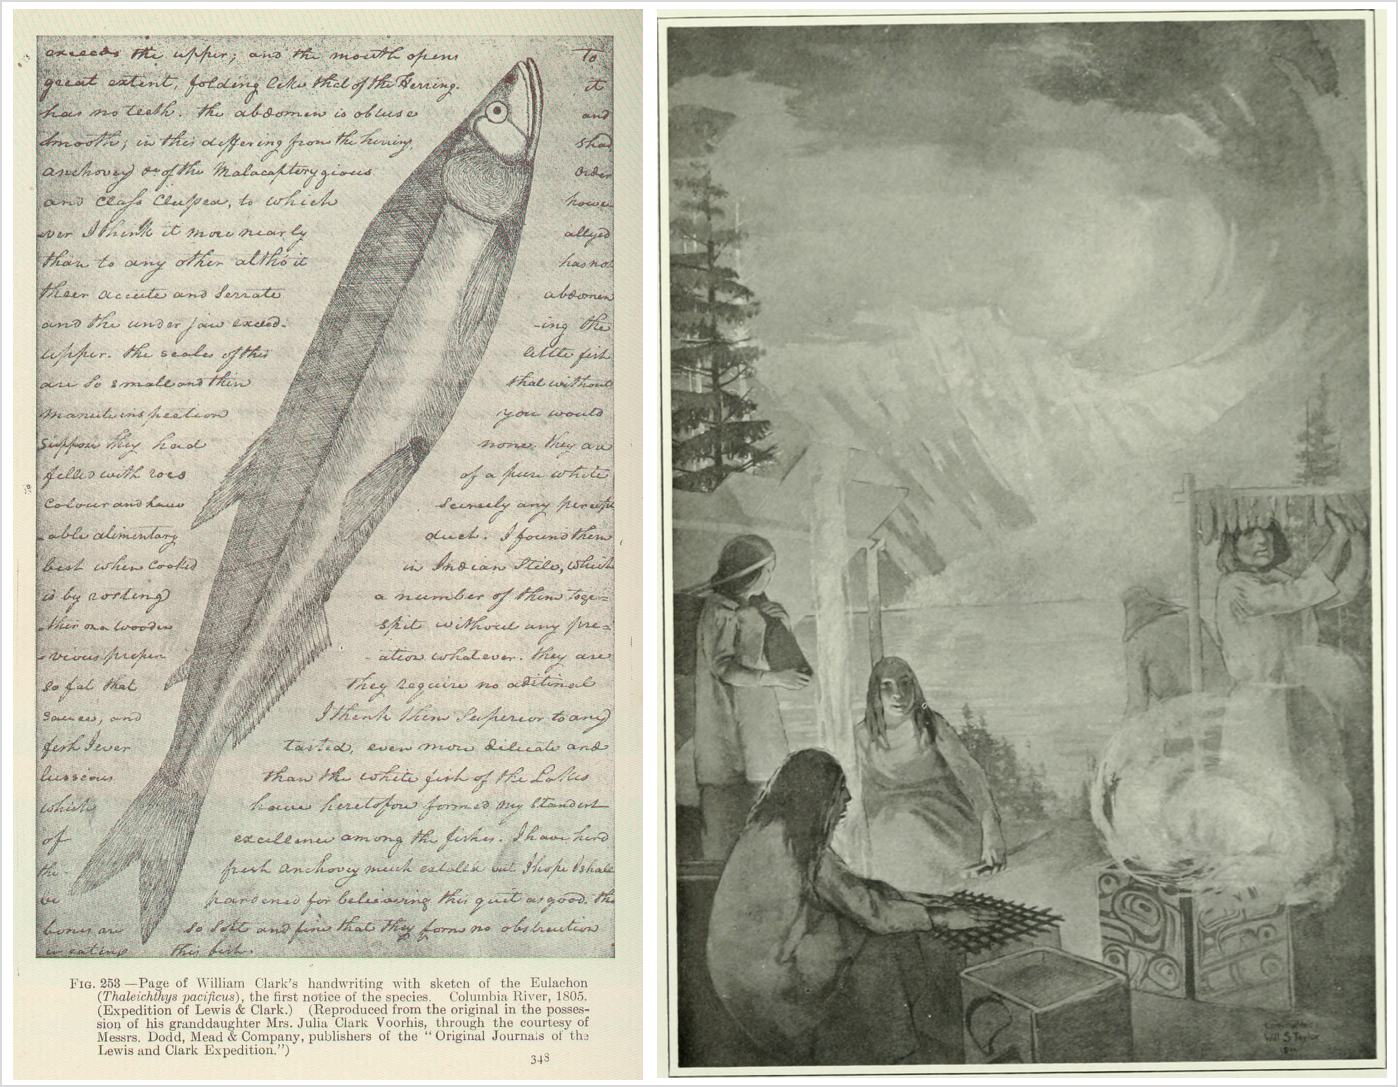 At left is a page from William Clark's journal, showing his handwritten entry and a large sketch, which appears to be made in pencil, of a eulachon smelt stretching diagonally across the page. At right, a black-and-white drawing or etching of a Tsimshian family making eulachon butter, showing family members working together on the bank of a river with tall trees and mountains framing the image.